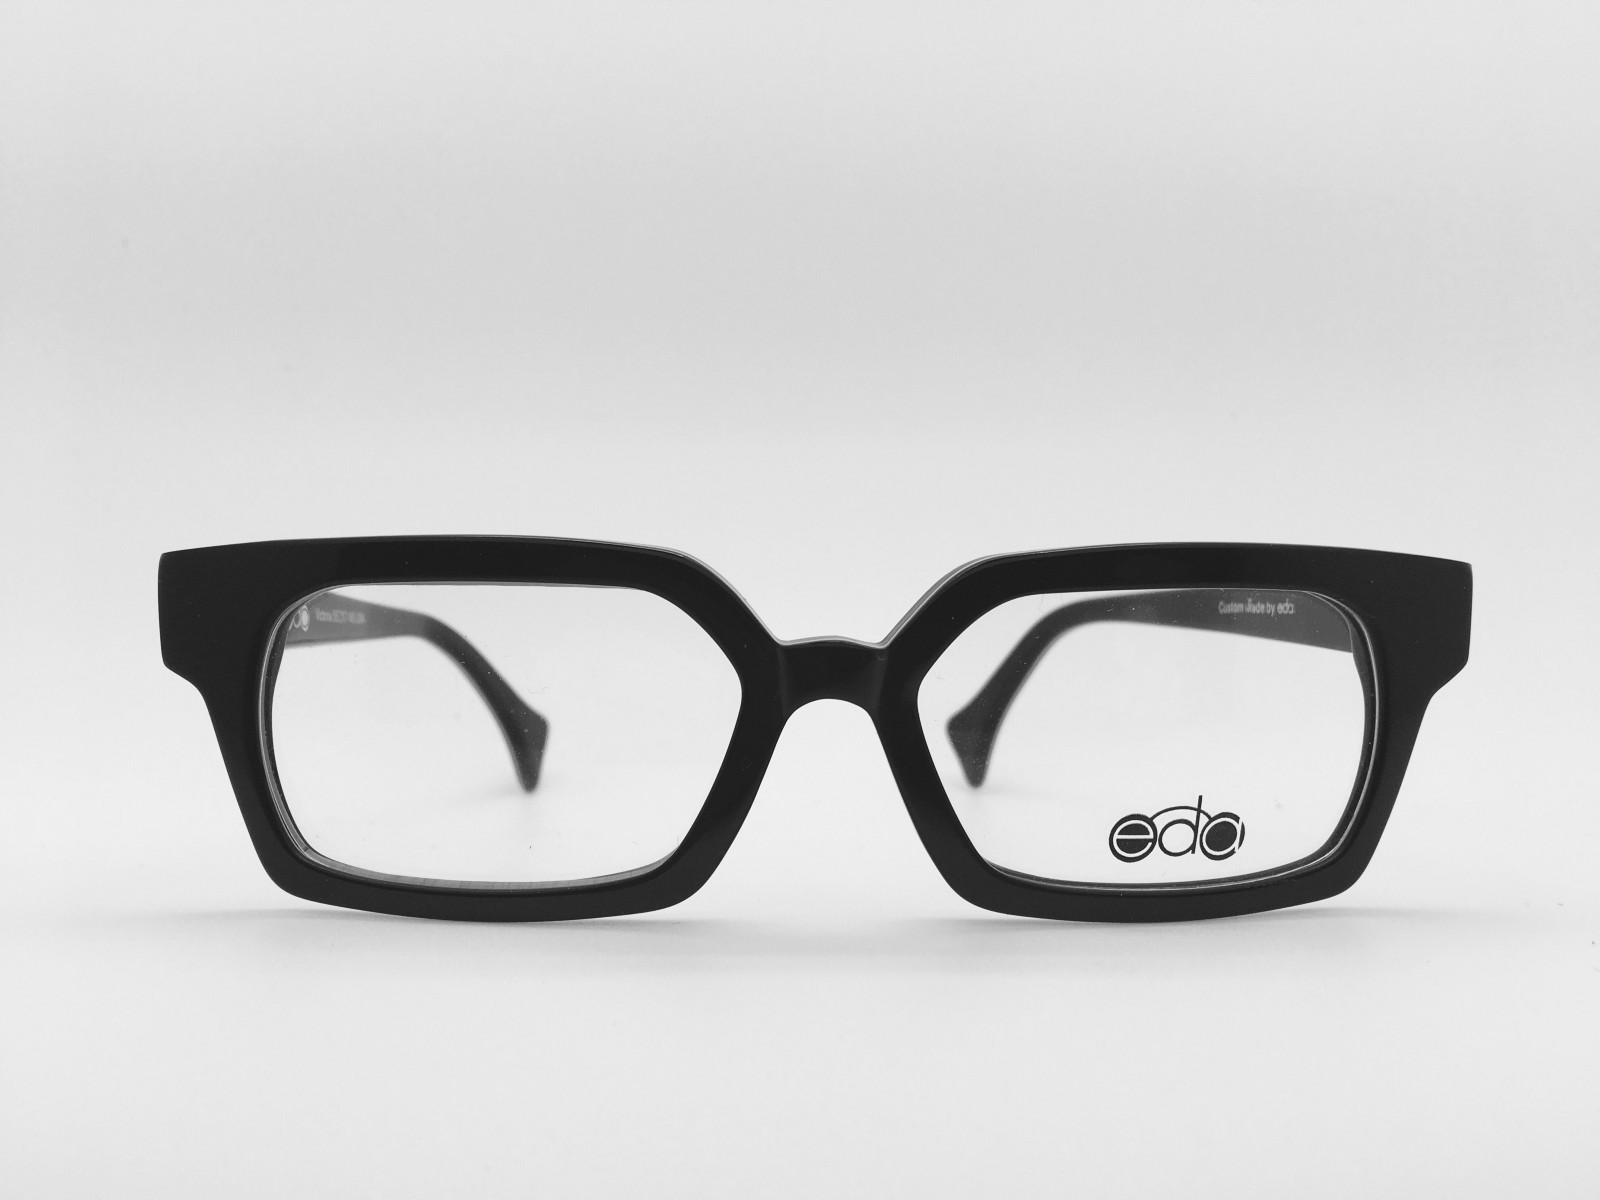 c266c3c8f3 Some of the Best Eyeglass Frames for very Thick Lenses are  Eyeglass Frame  Exclusively Designed by EDA Frames for Brandon Gaston